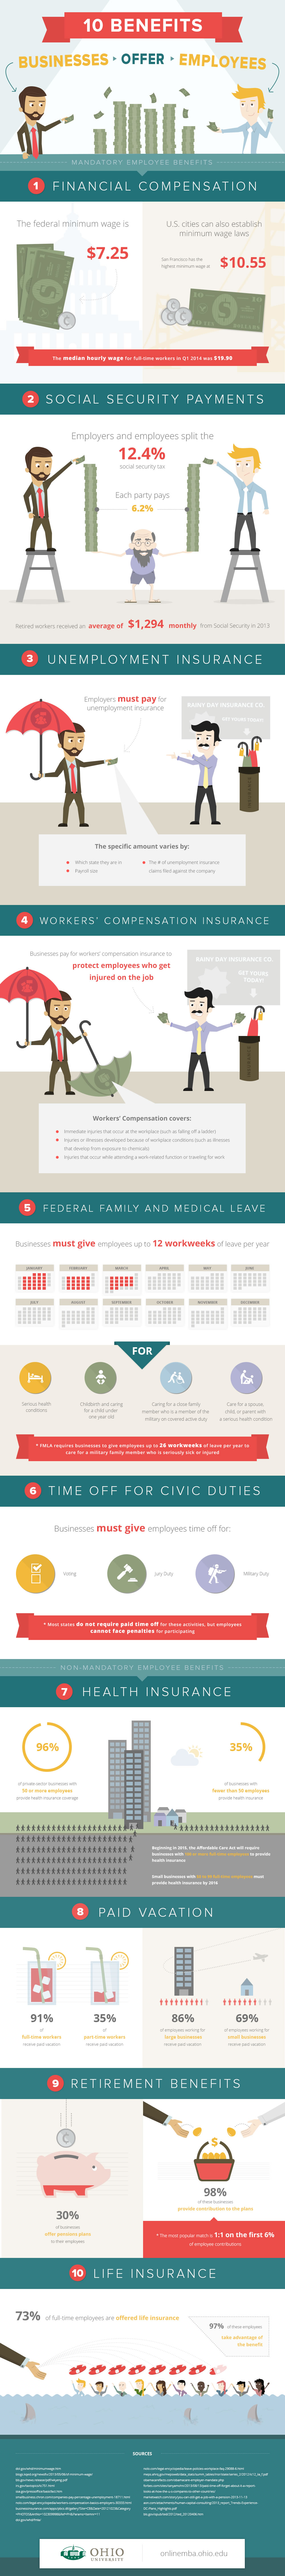 10 Benefits: Business, Offer, Employees   #infographic #Business #EmployeeBenefits